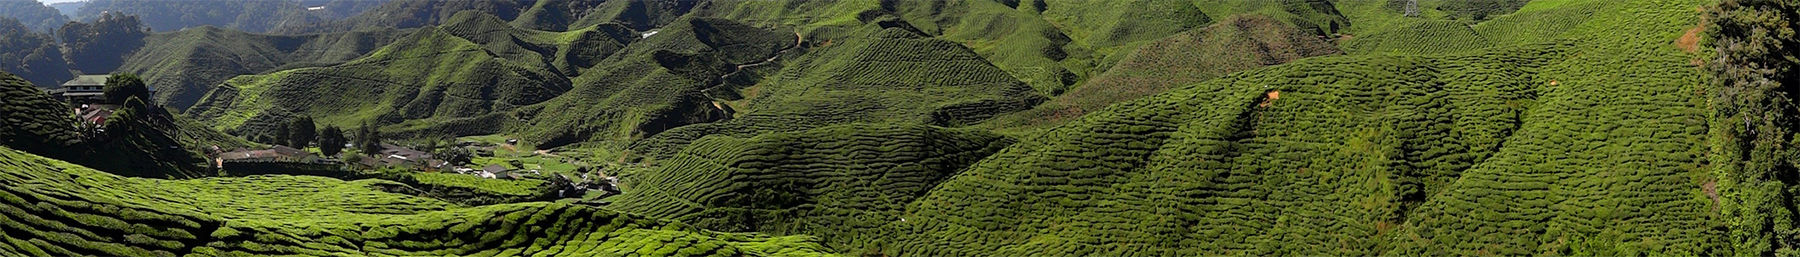 Cameron Highlands Tea Plantation banner.jpg